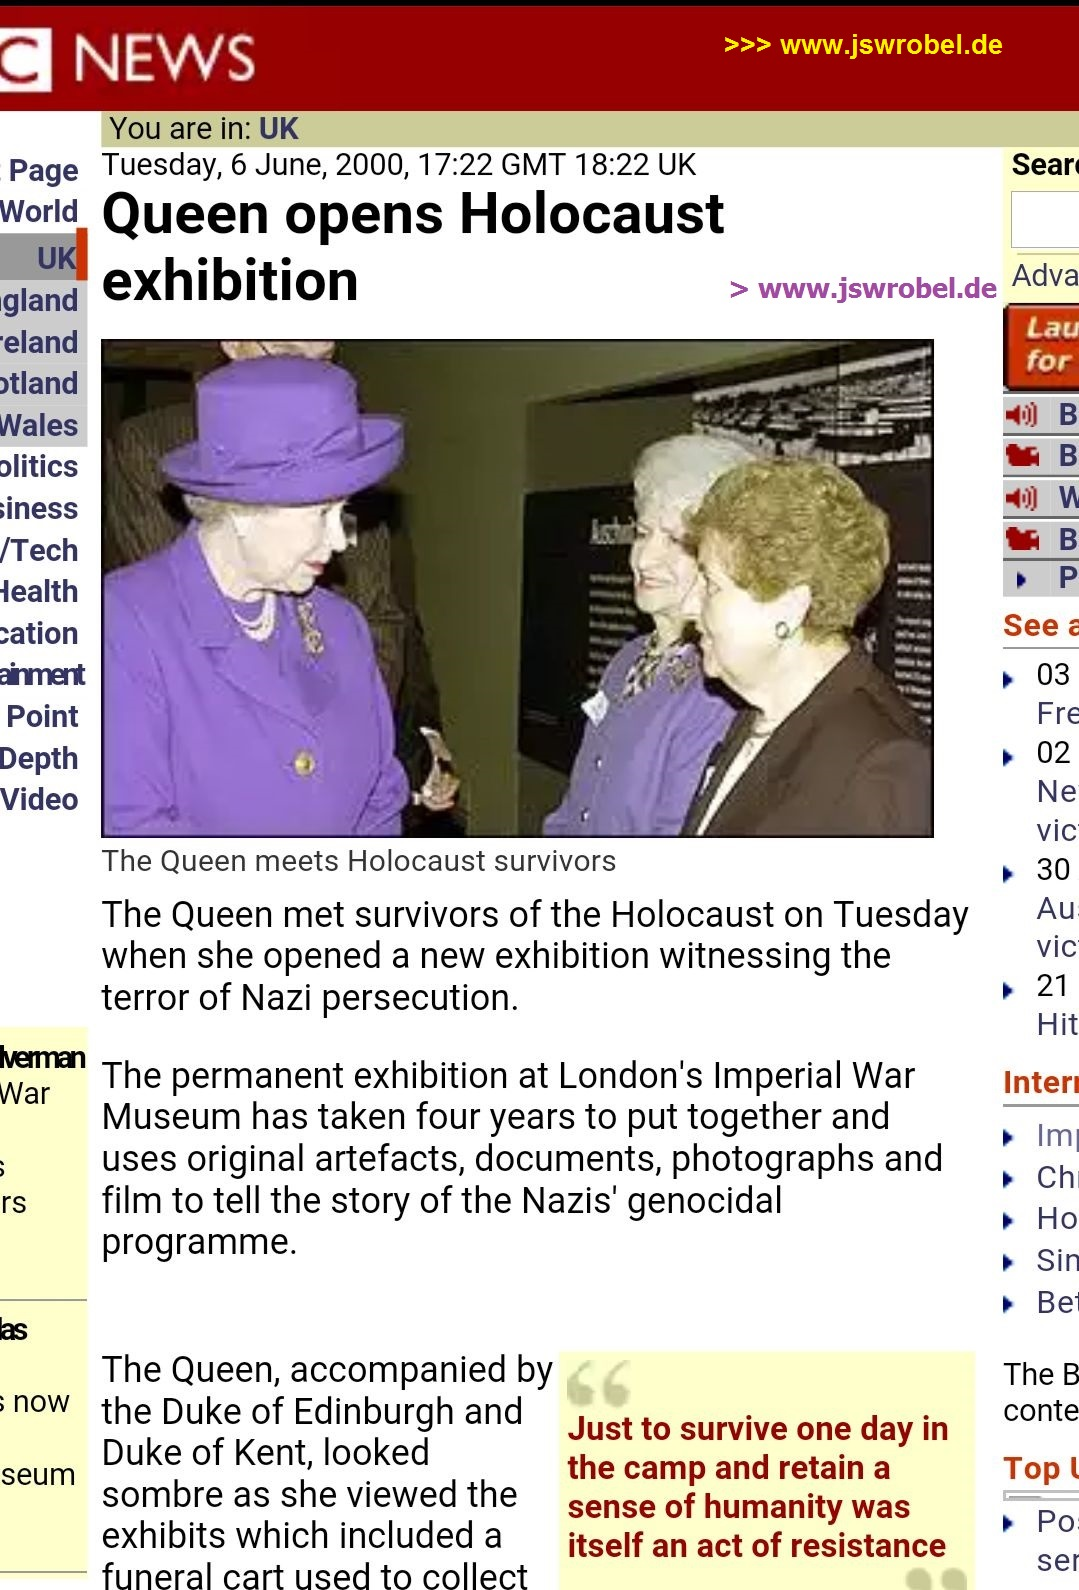 BBC News: Queen opens Holocaust Exhibition (6 June 2000)